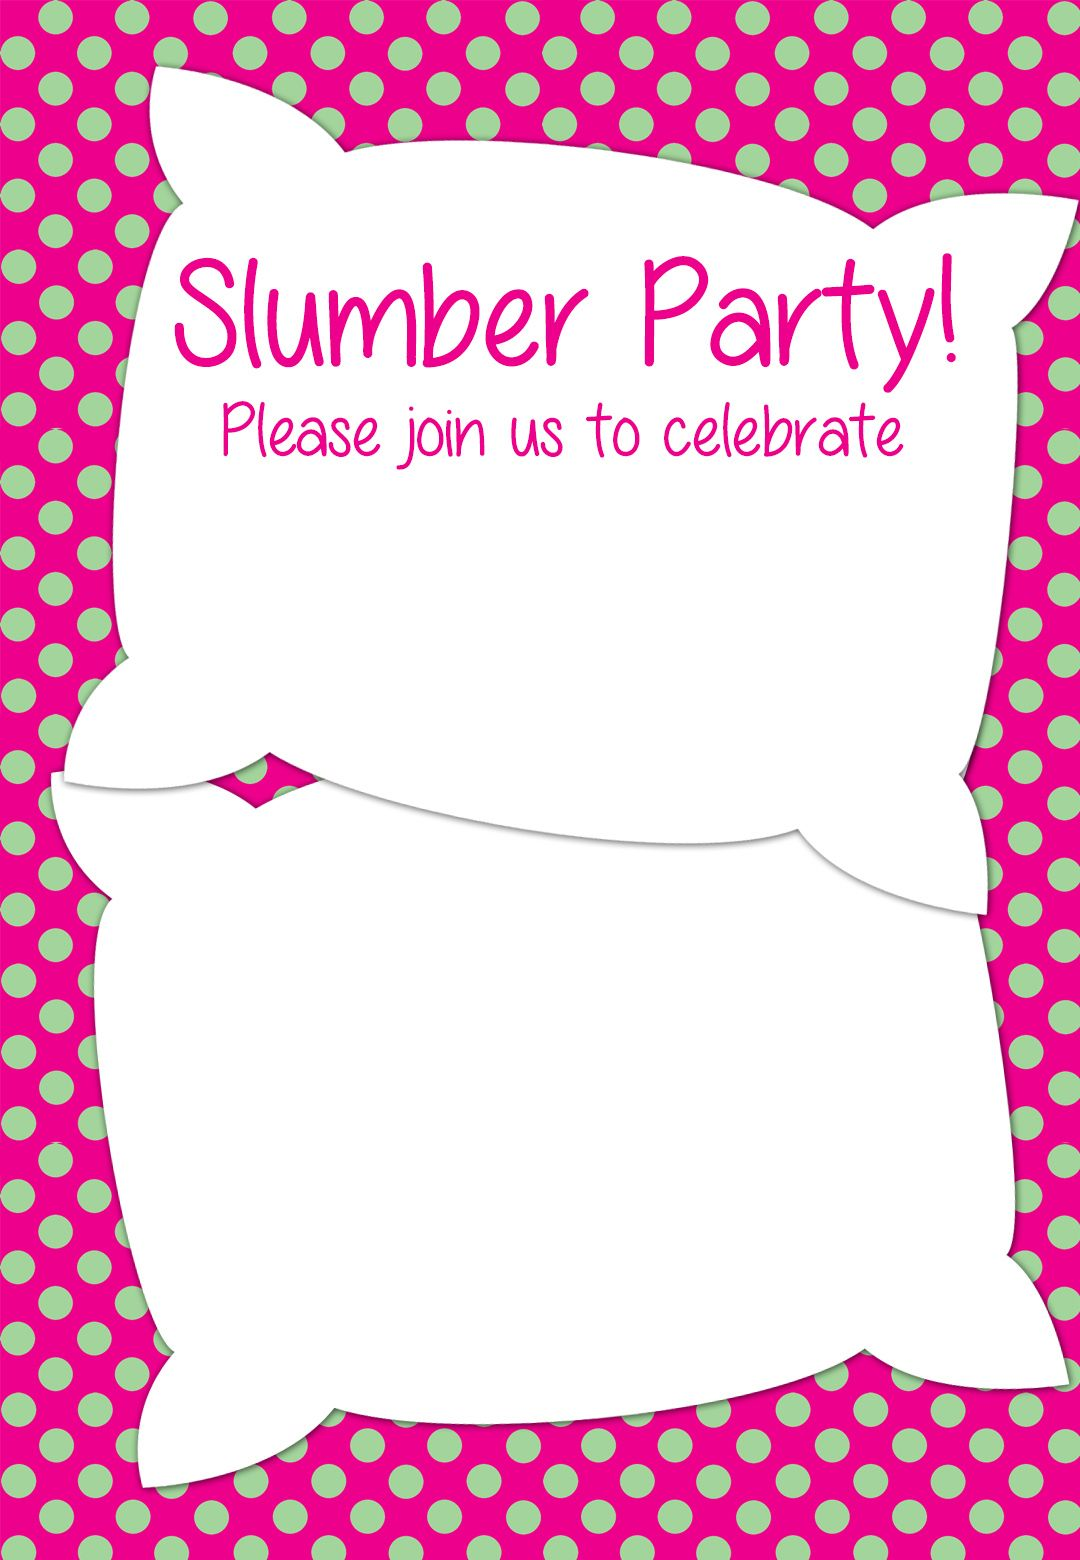 Free Printable Slumber Party Invitation Party ideas – Free Birthday Party Invitations for Kids